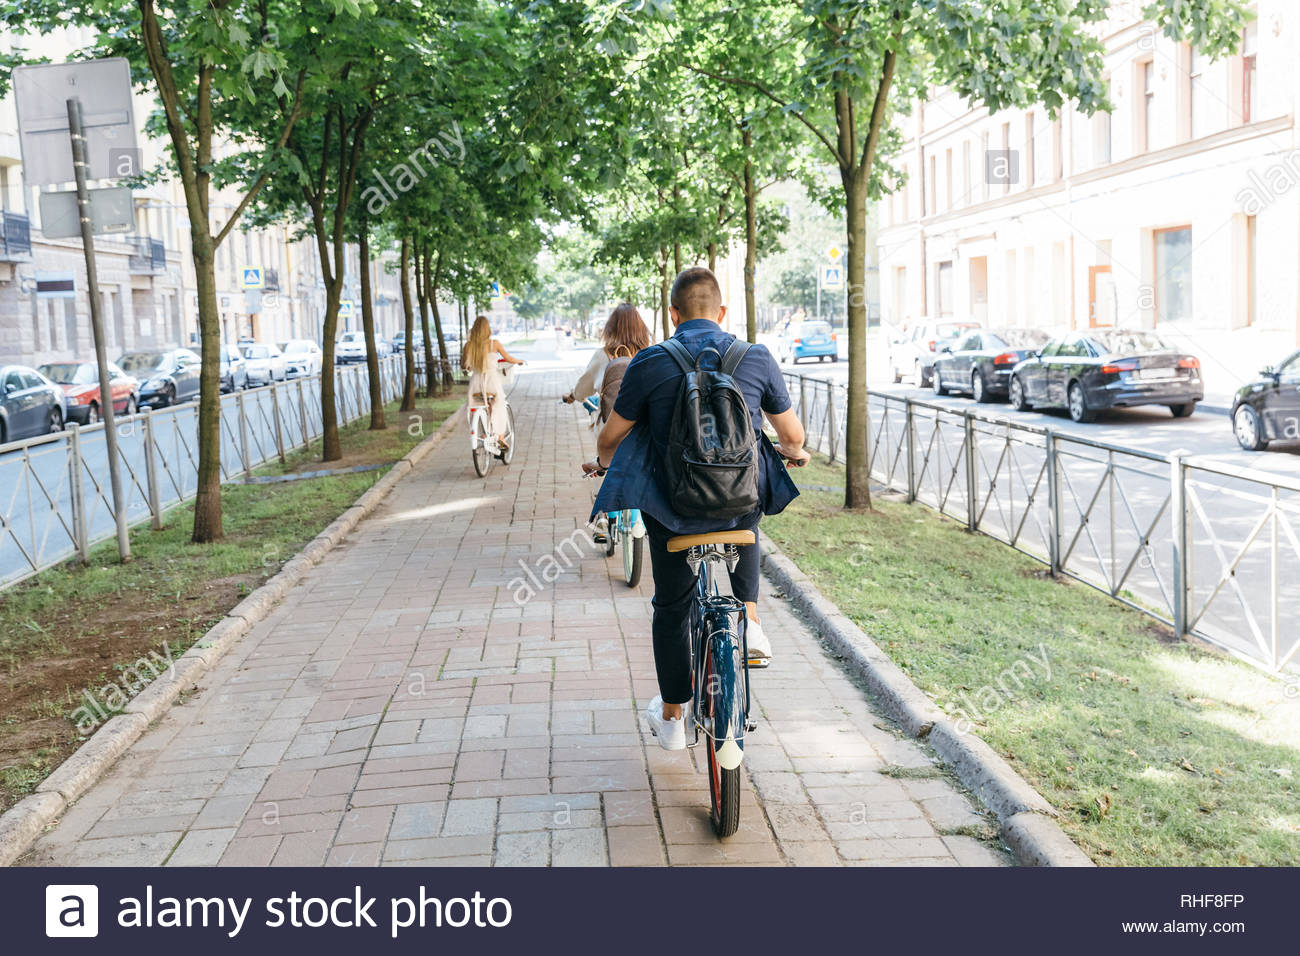 Three people riding bicycles on the boulevard, enjoying cycling on a summer day/ a man and two women ride bikes around the city, go to work/. - Stock Image